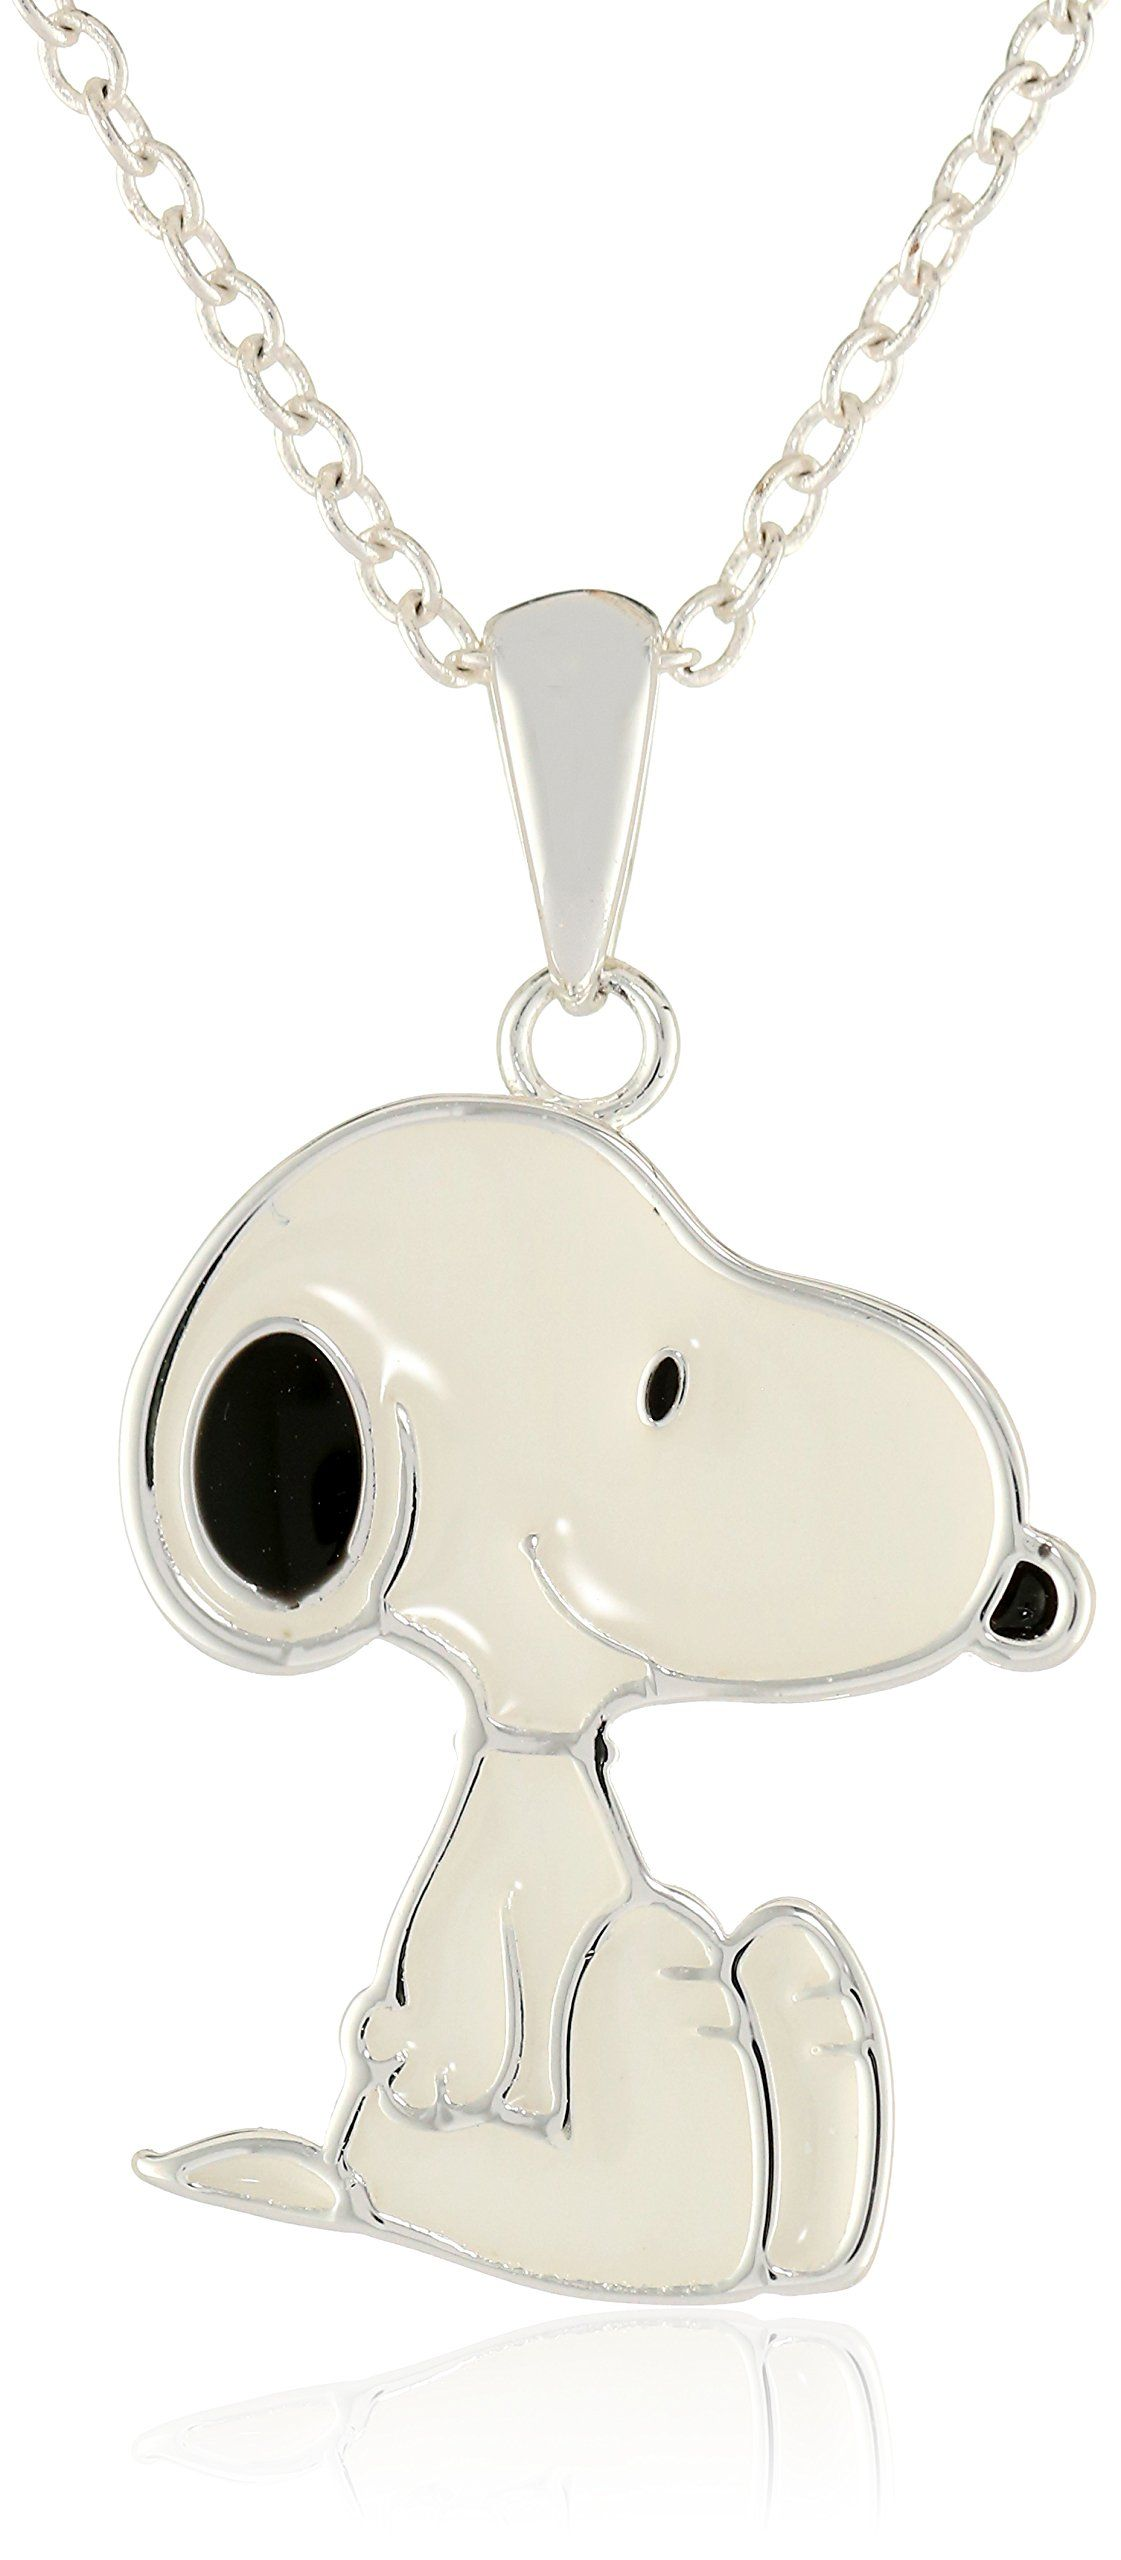 Refaire Salle De Bain Pas Cher ~ peanuts girls snoopy silver plated pendant necklace jewerly